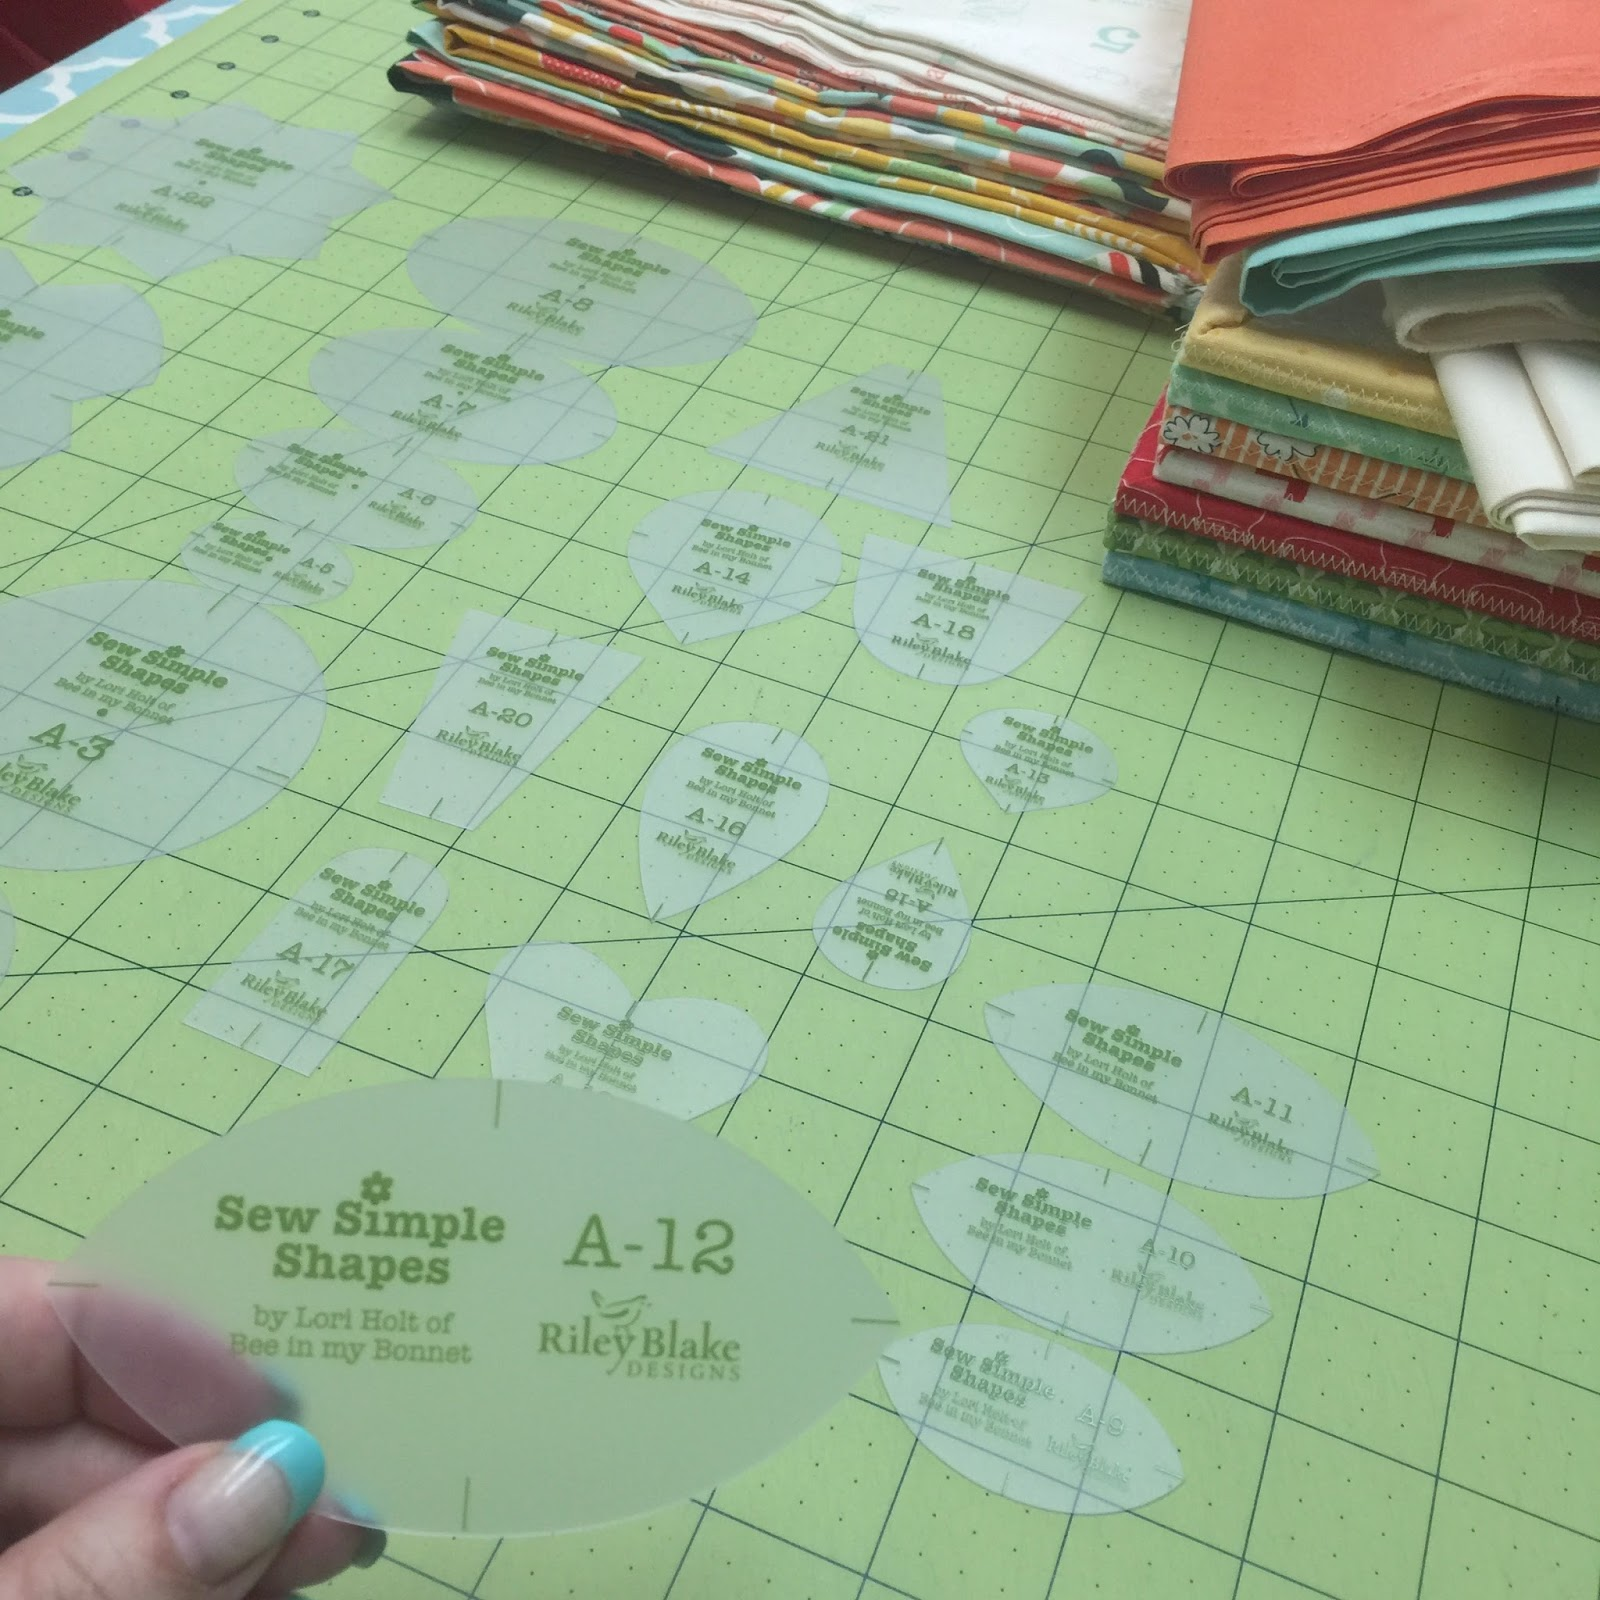 BLOOM Sew Simple Shapes - Traditional Hand Applique Method